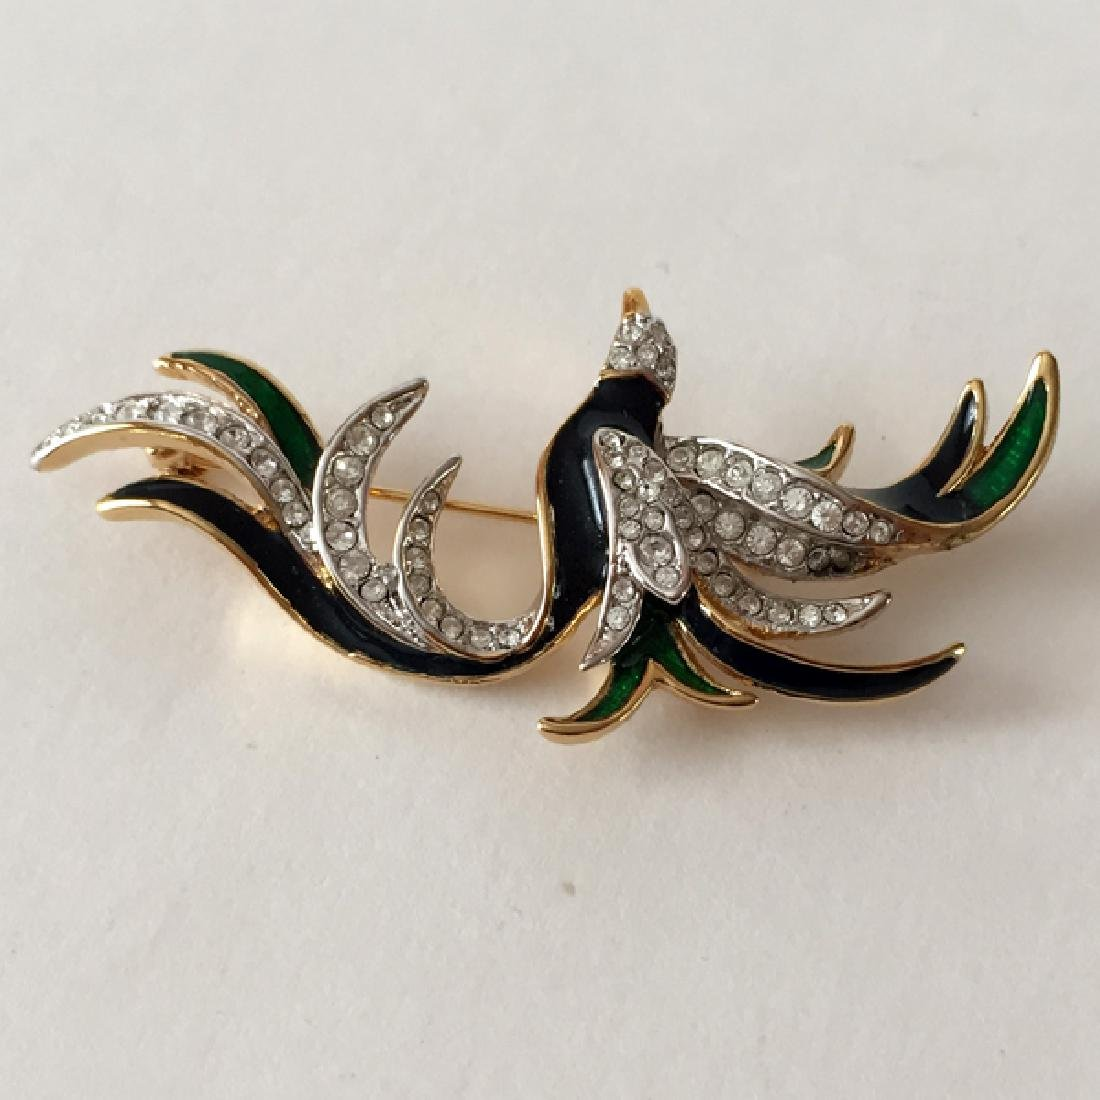 Gold plated FLYING BIRD shaped brooch with white - 2